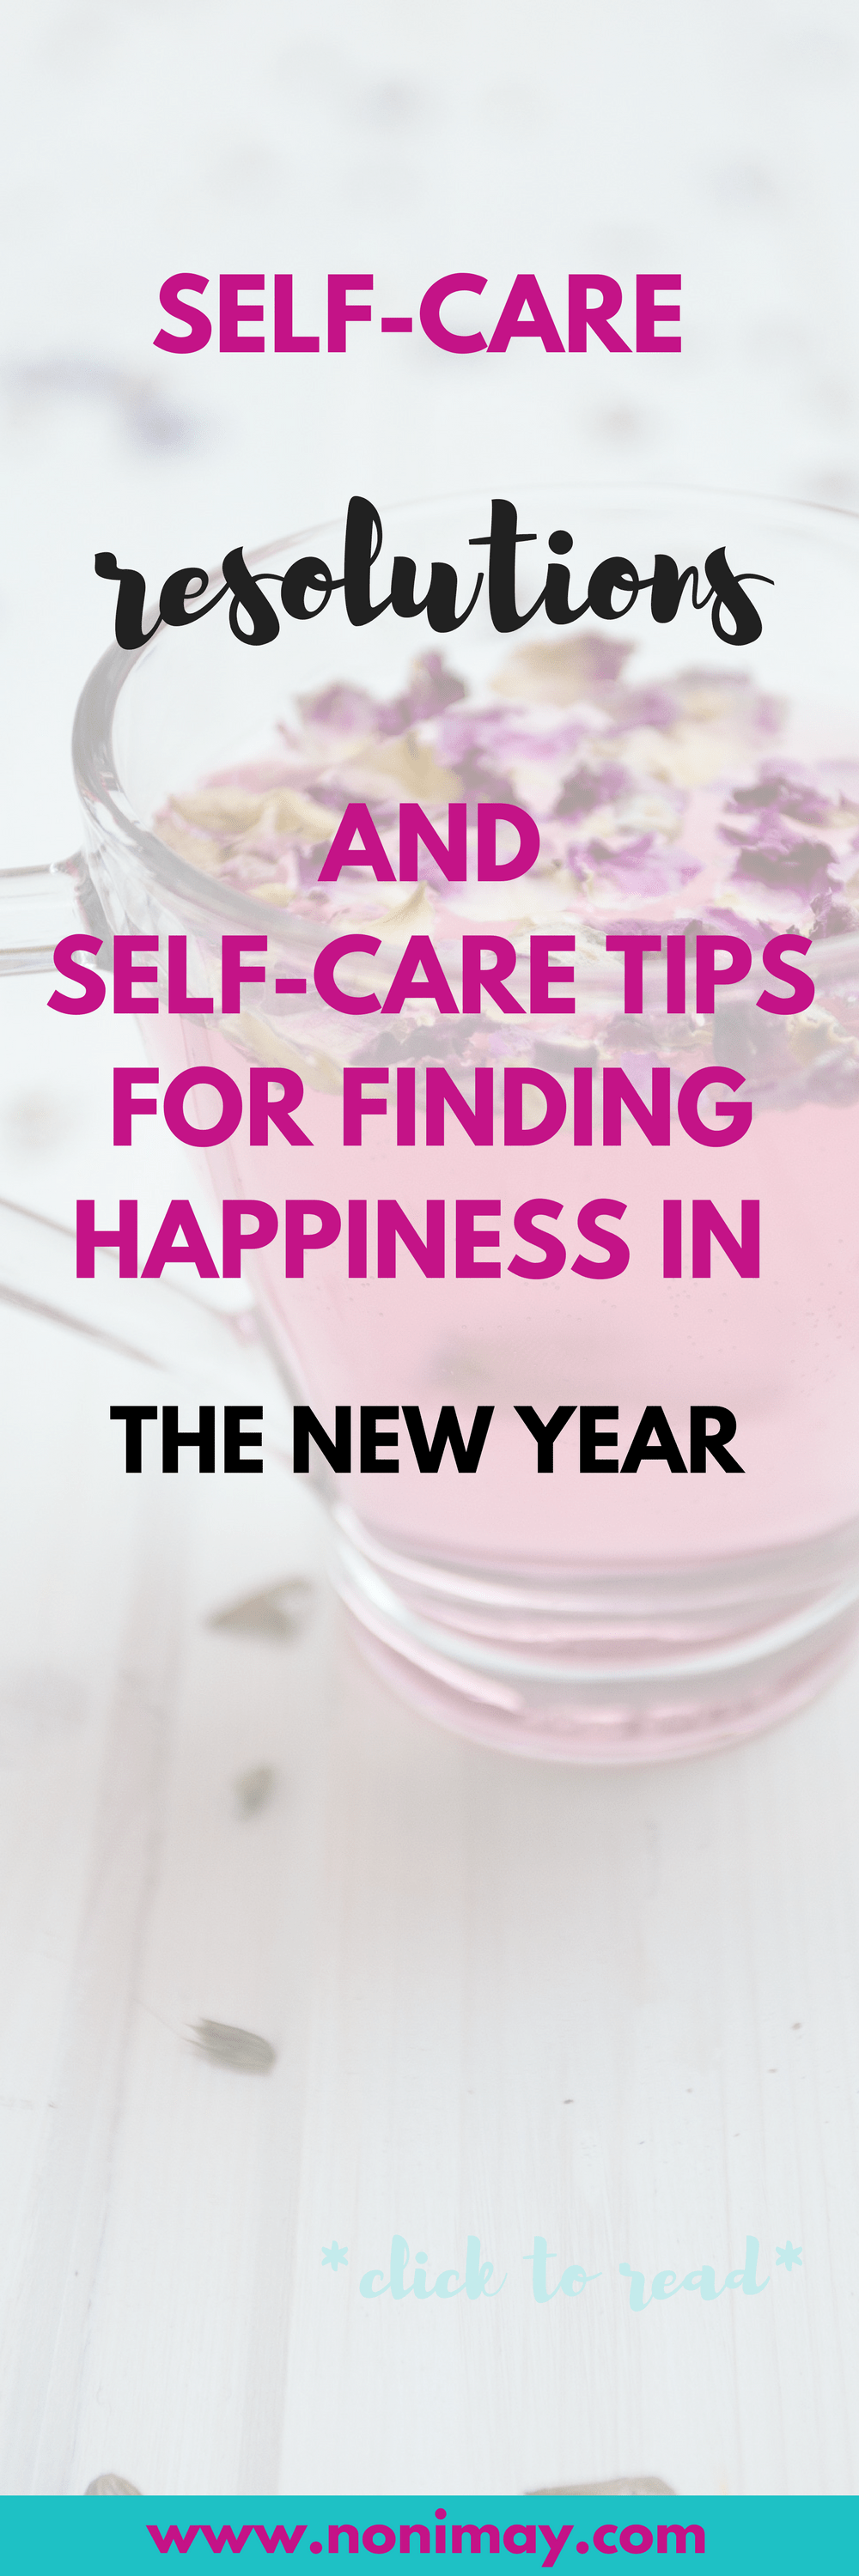 Self-care resolutions for finding happiness in the new year